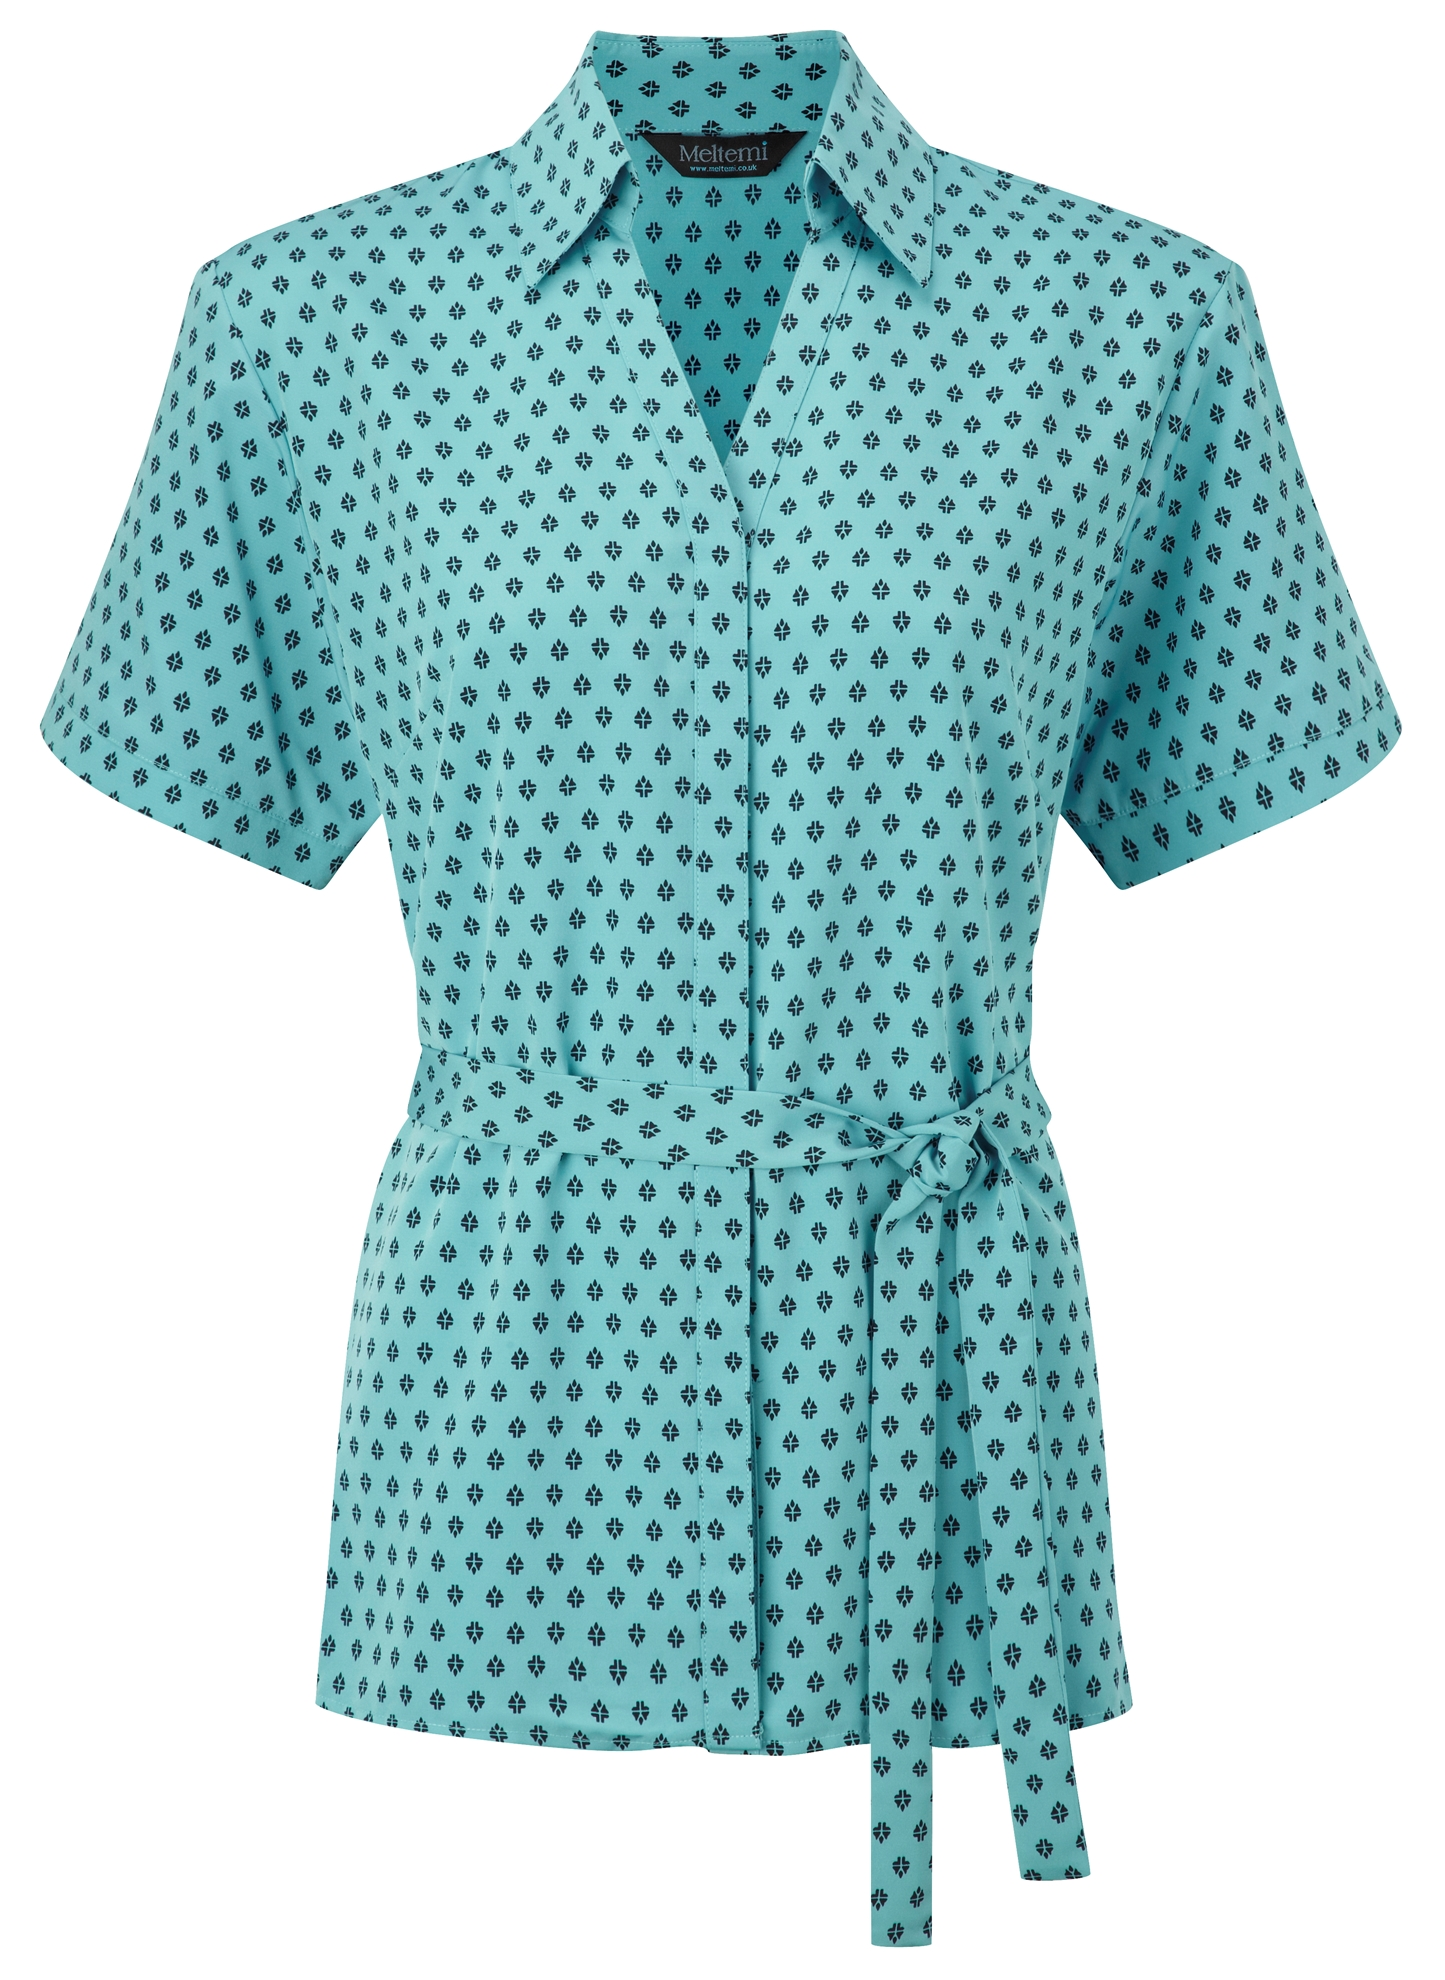 Picture of Looser Style Polyester Blouse - Light Blue/Navy Fleur Print